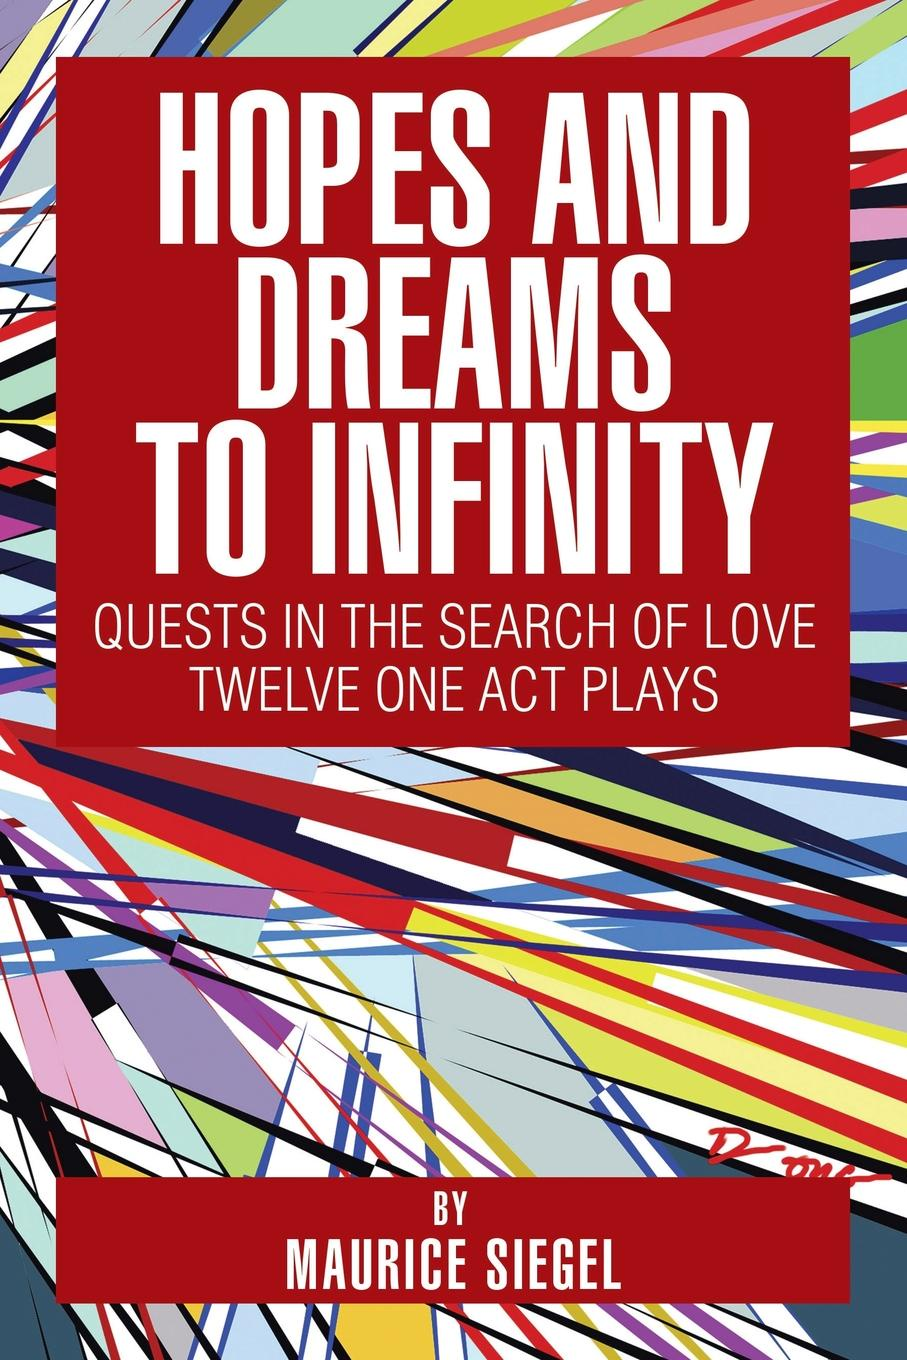 Maurice Siegel Hopes and Dreams to Infinity. Quests in the Search of Love Twelve One Act Plays colleen e edwards tithes and offerings an act of love